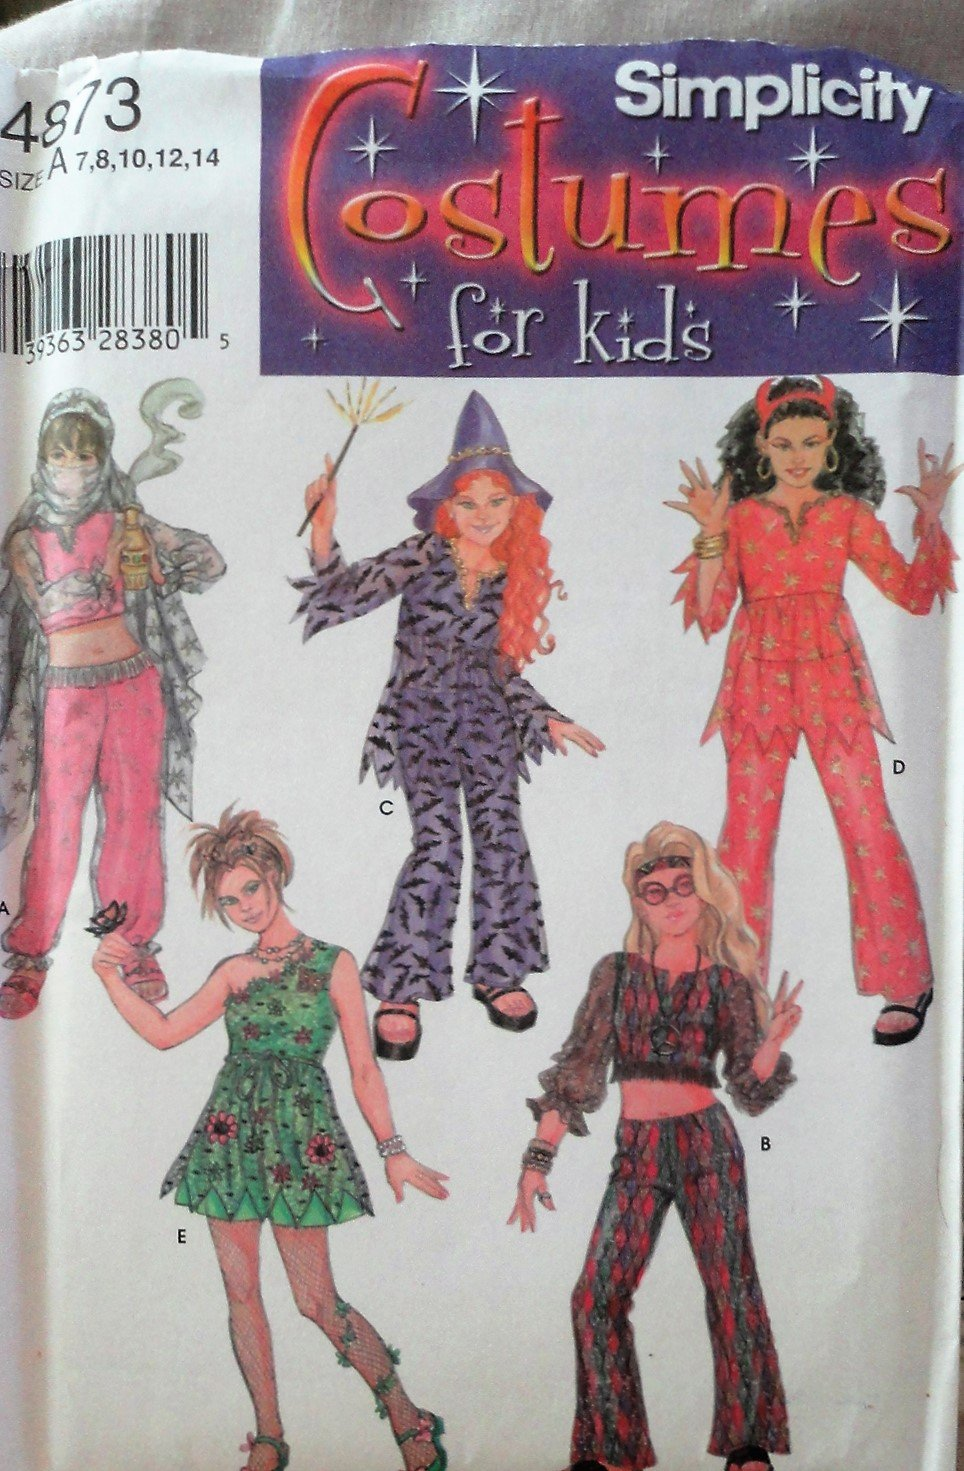 Simplicity 4873  Costume Sewing Pattern For Child sizes 7-14 Fairy, witch